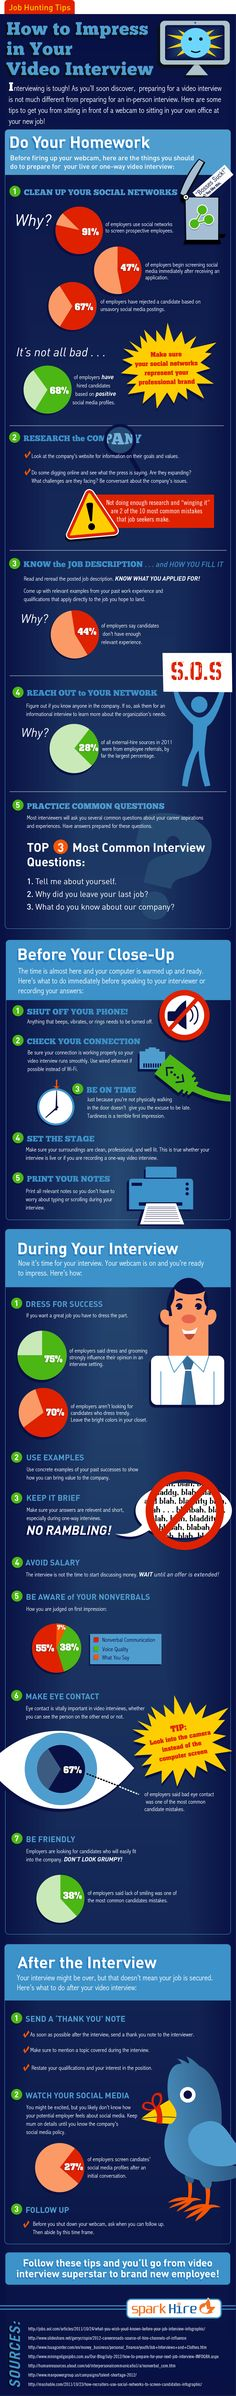 From setting the stage to watching your nonverbals, this infographic has all the tips you need to ace your next video interview!